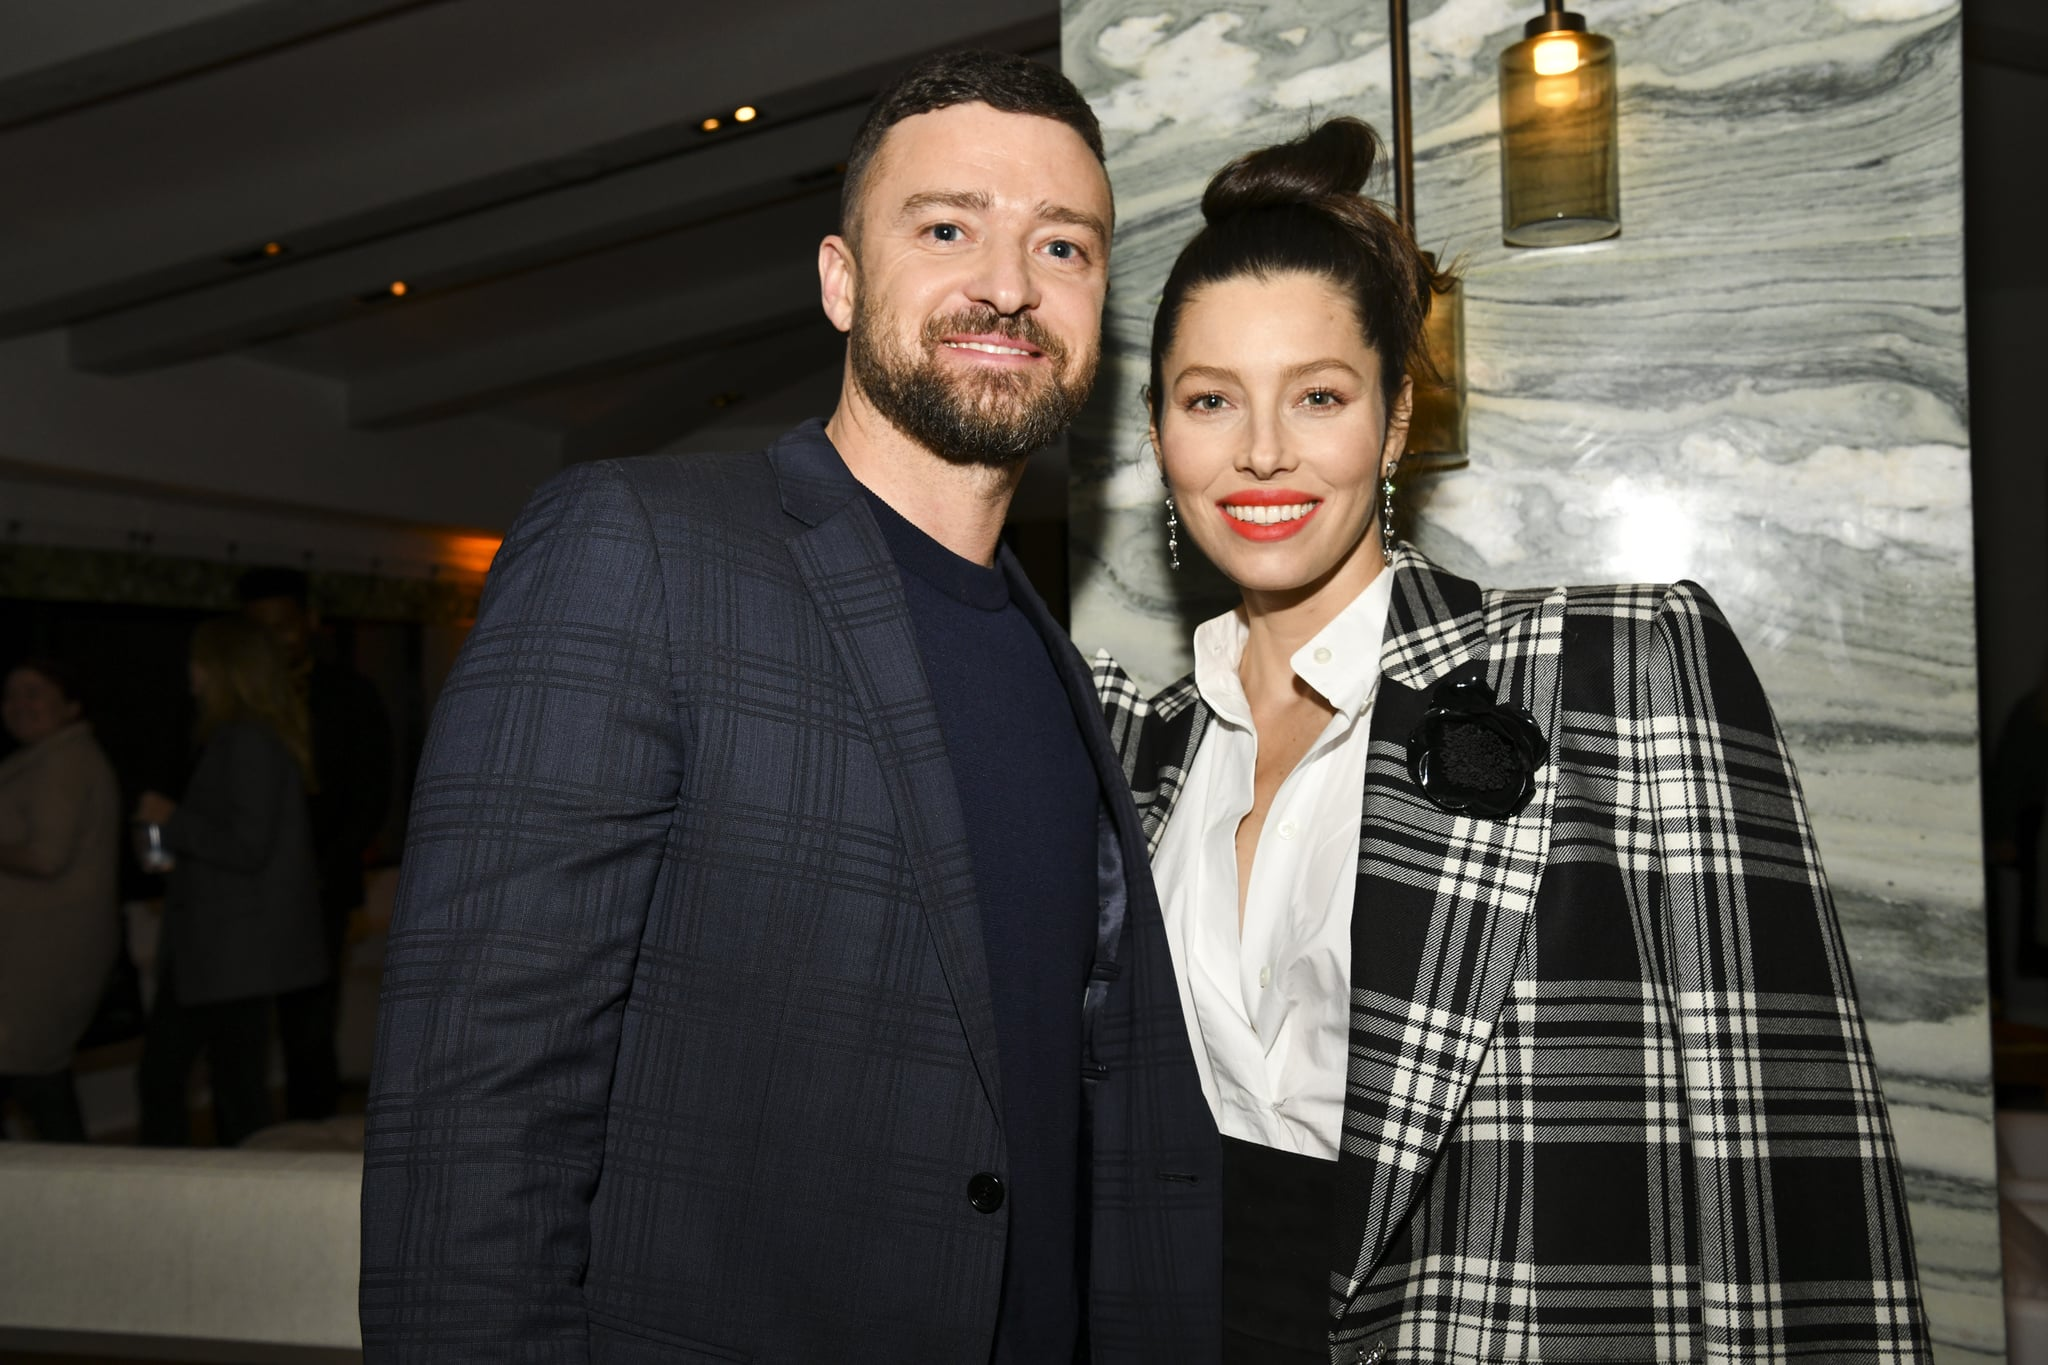 WEST HOLLYWOOD, CALIFORNIA - FEBRUARY 03: (L-R) Justin Timberlake and Jessica Biel pose for portrait at the Premiere of USA Network's